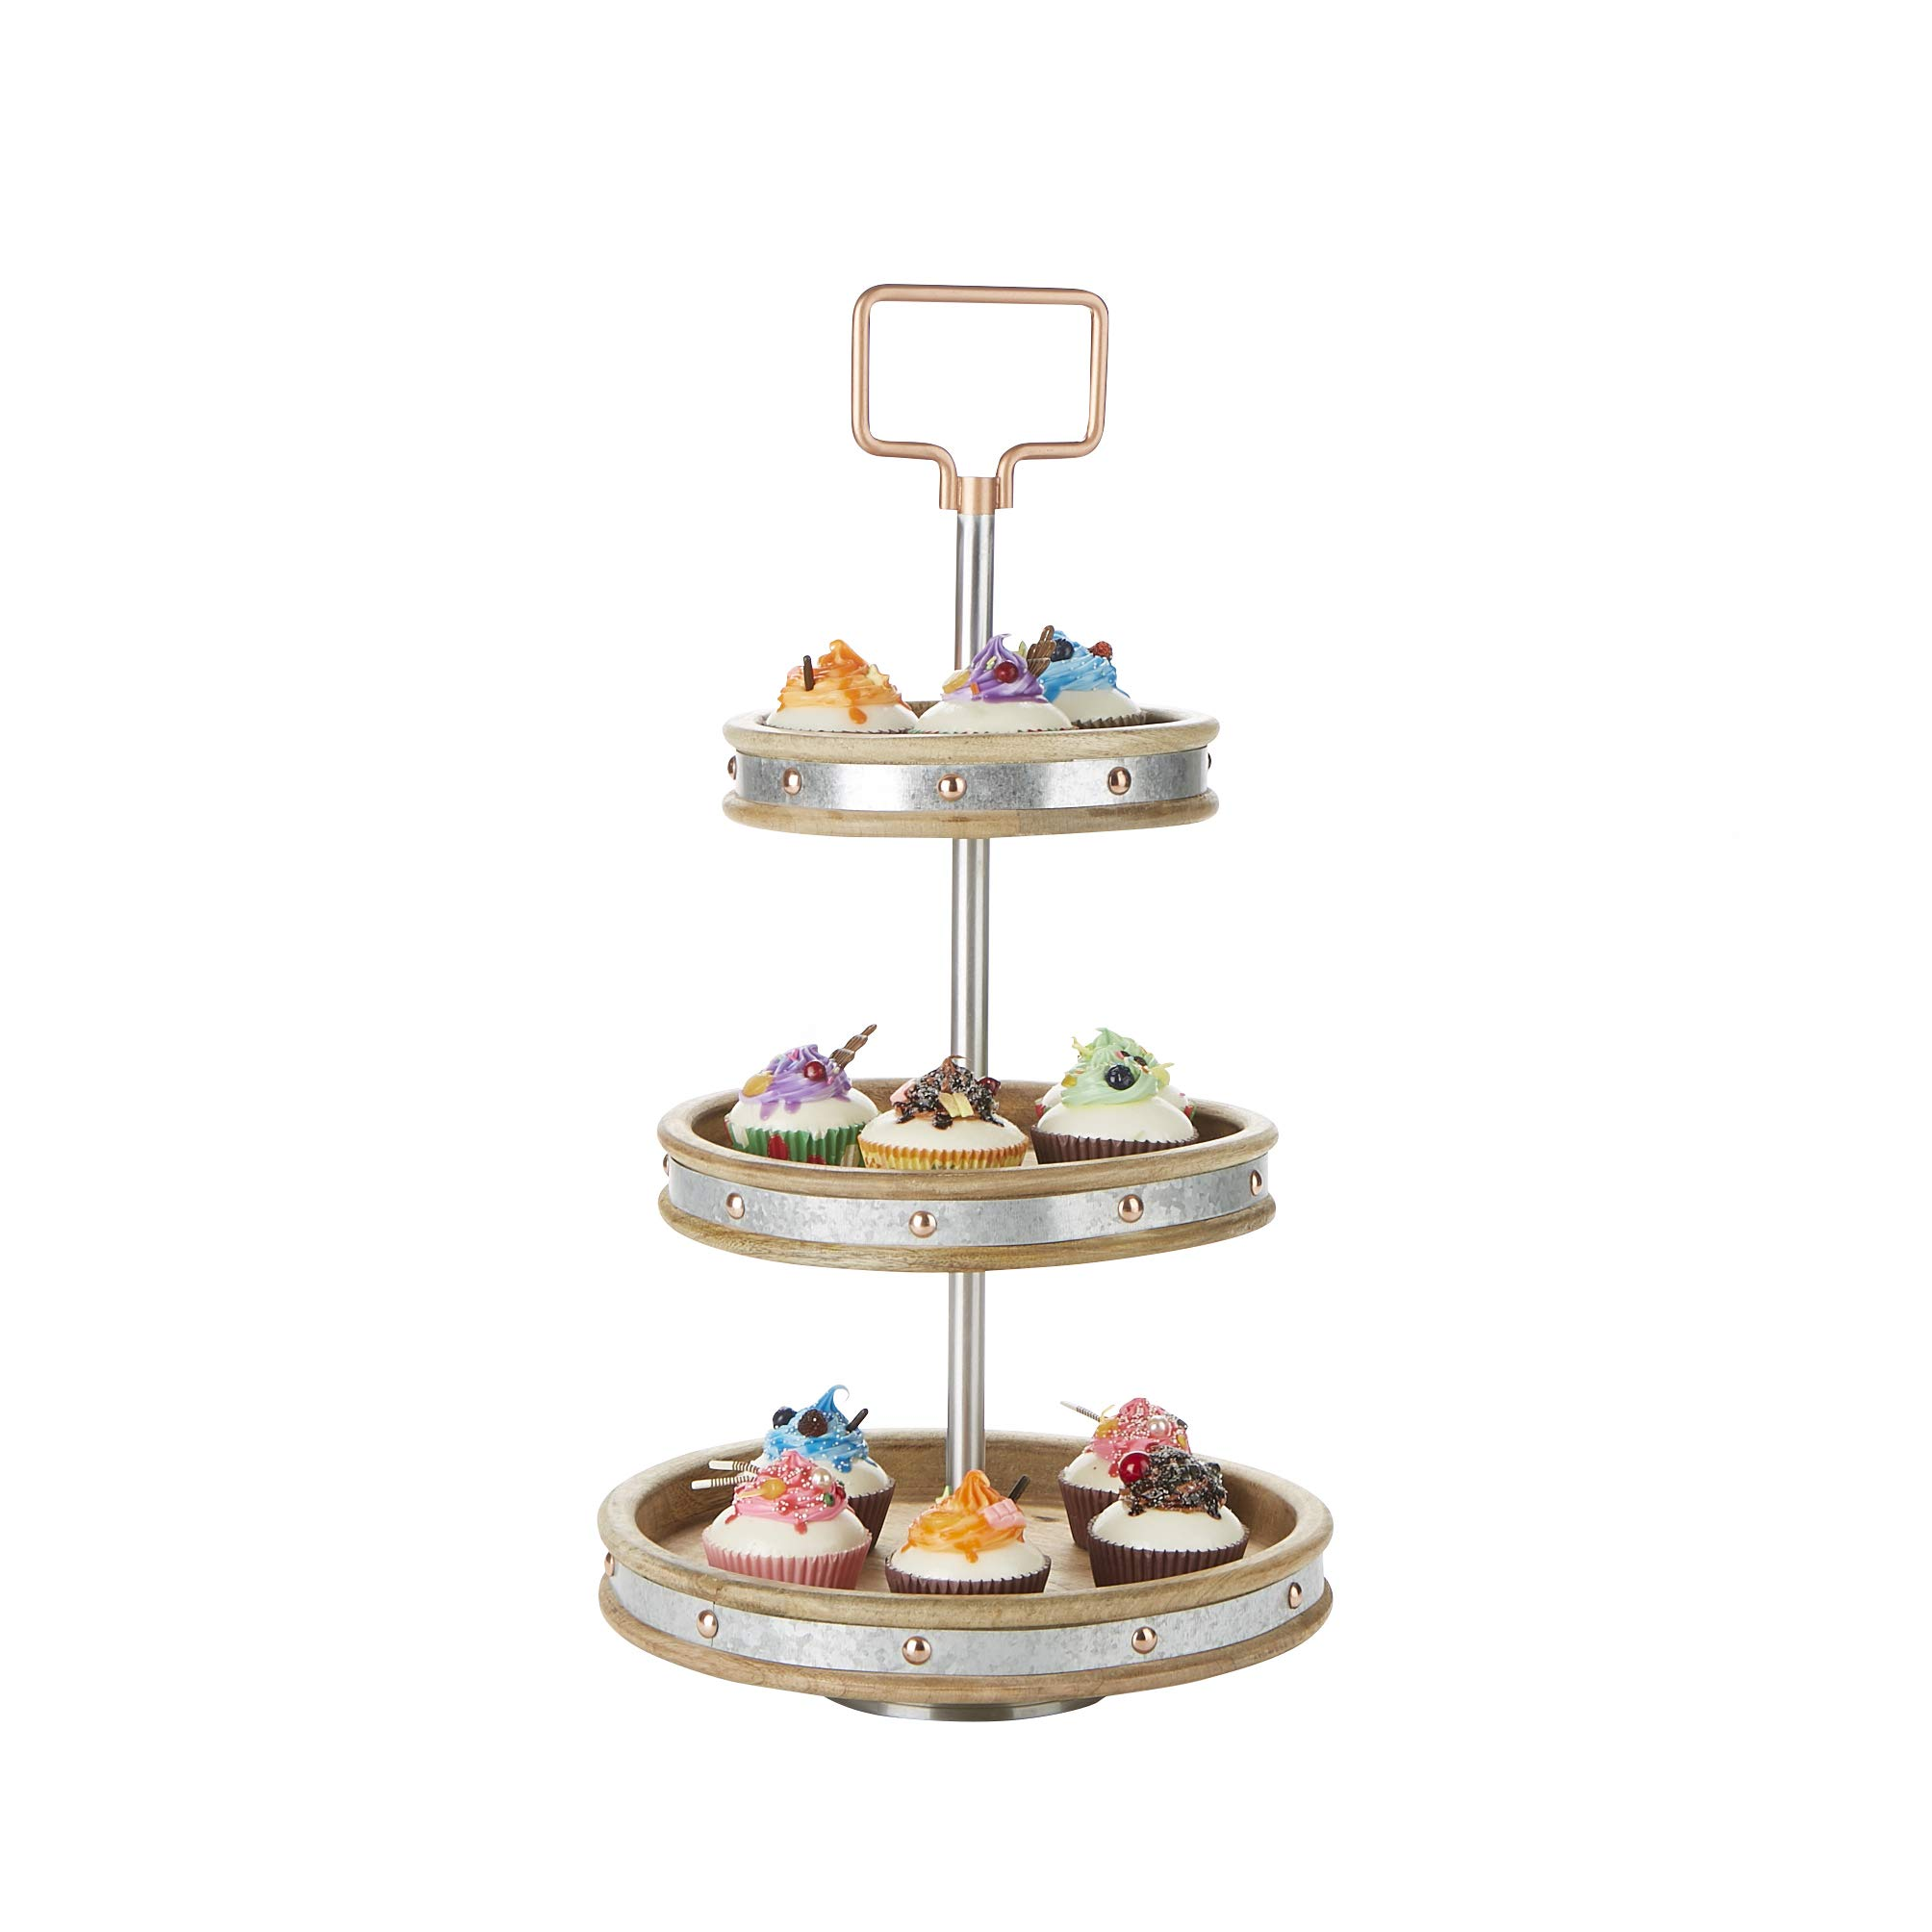 Mind Reader 3TCIRCALU-SIL 3, Party Pastry, Cupcake Holder, Tree Tower Stand, Tiered Serving Dessert Display Tray, Silver, One Size